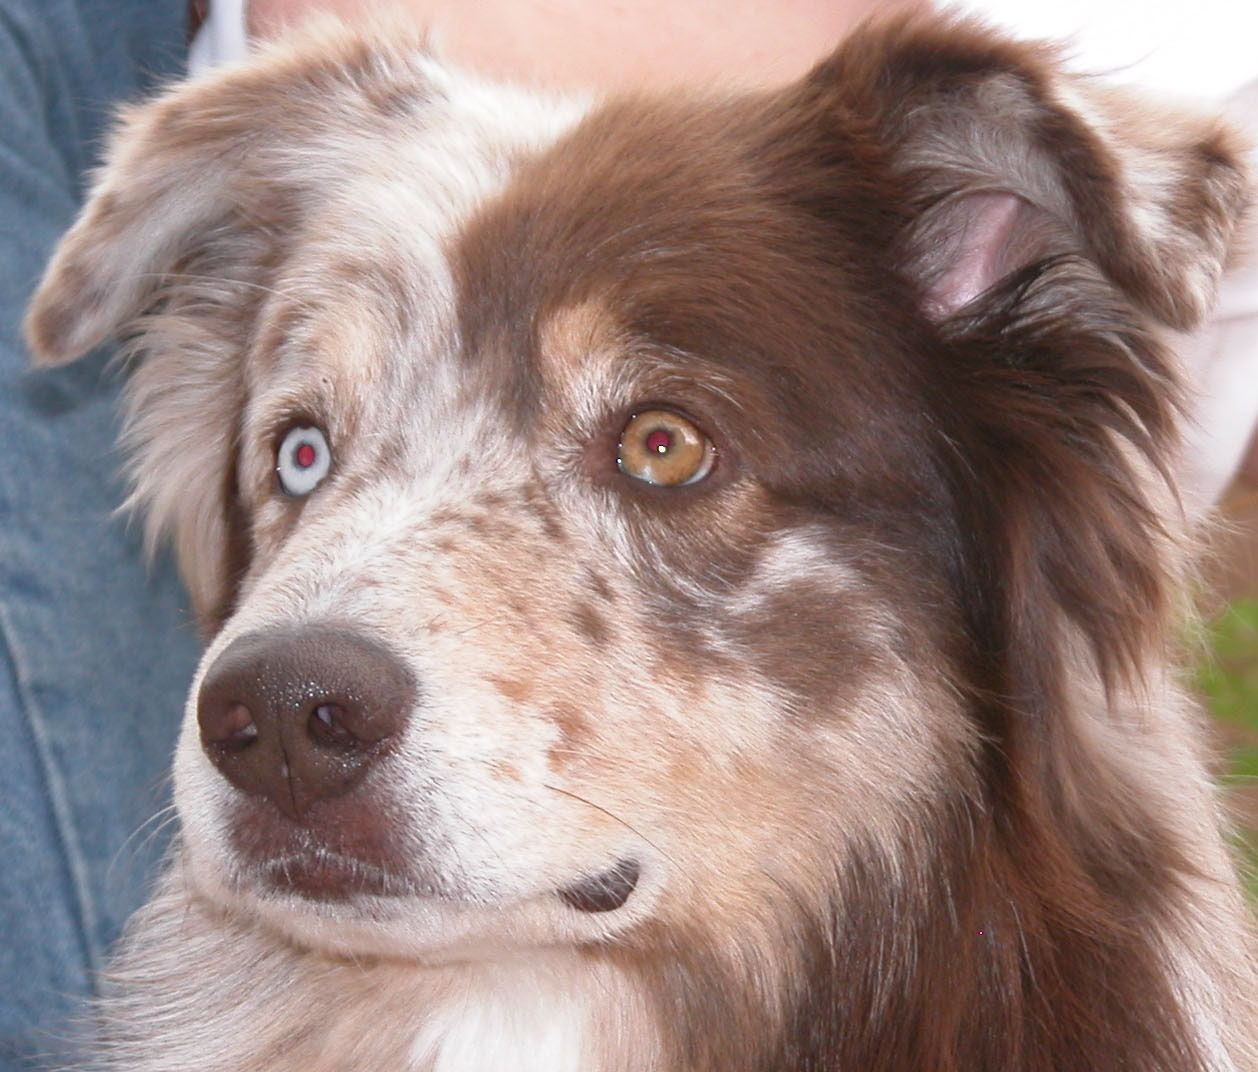 Aussie Eye Color And Eyeshine Training Your Dog Your Dog Dog